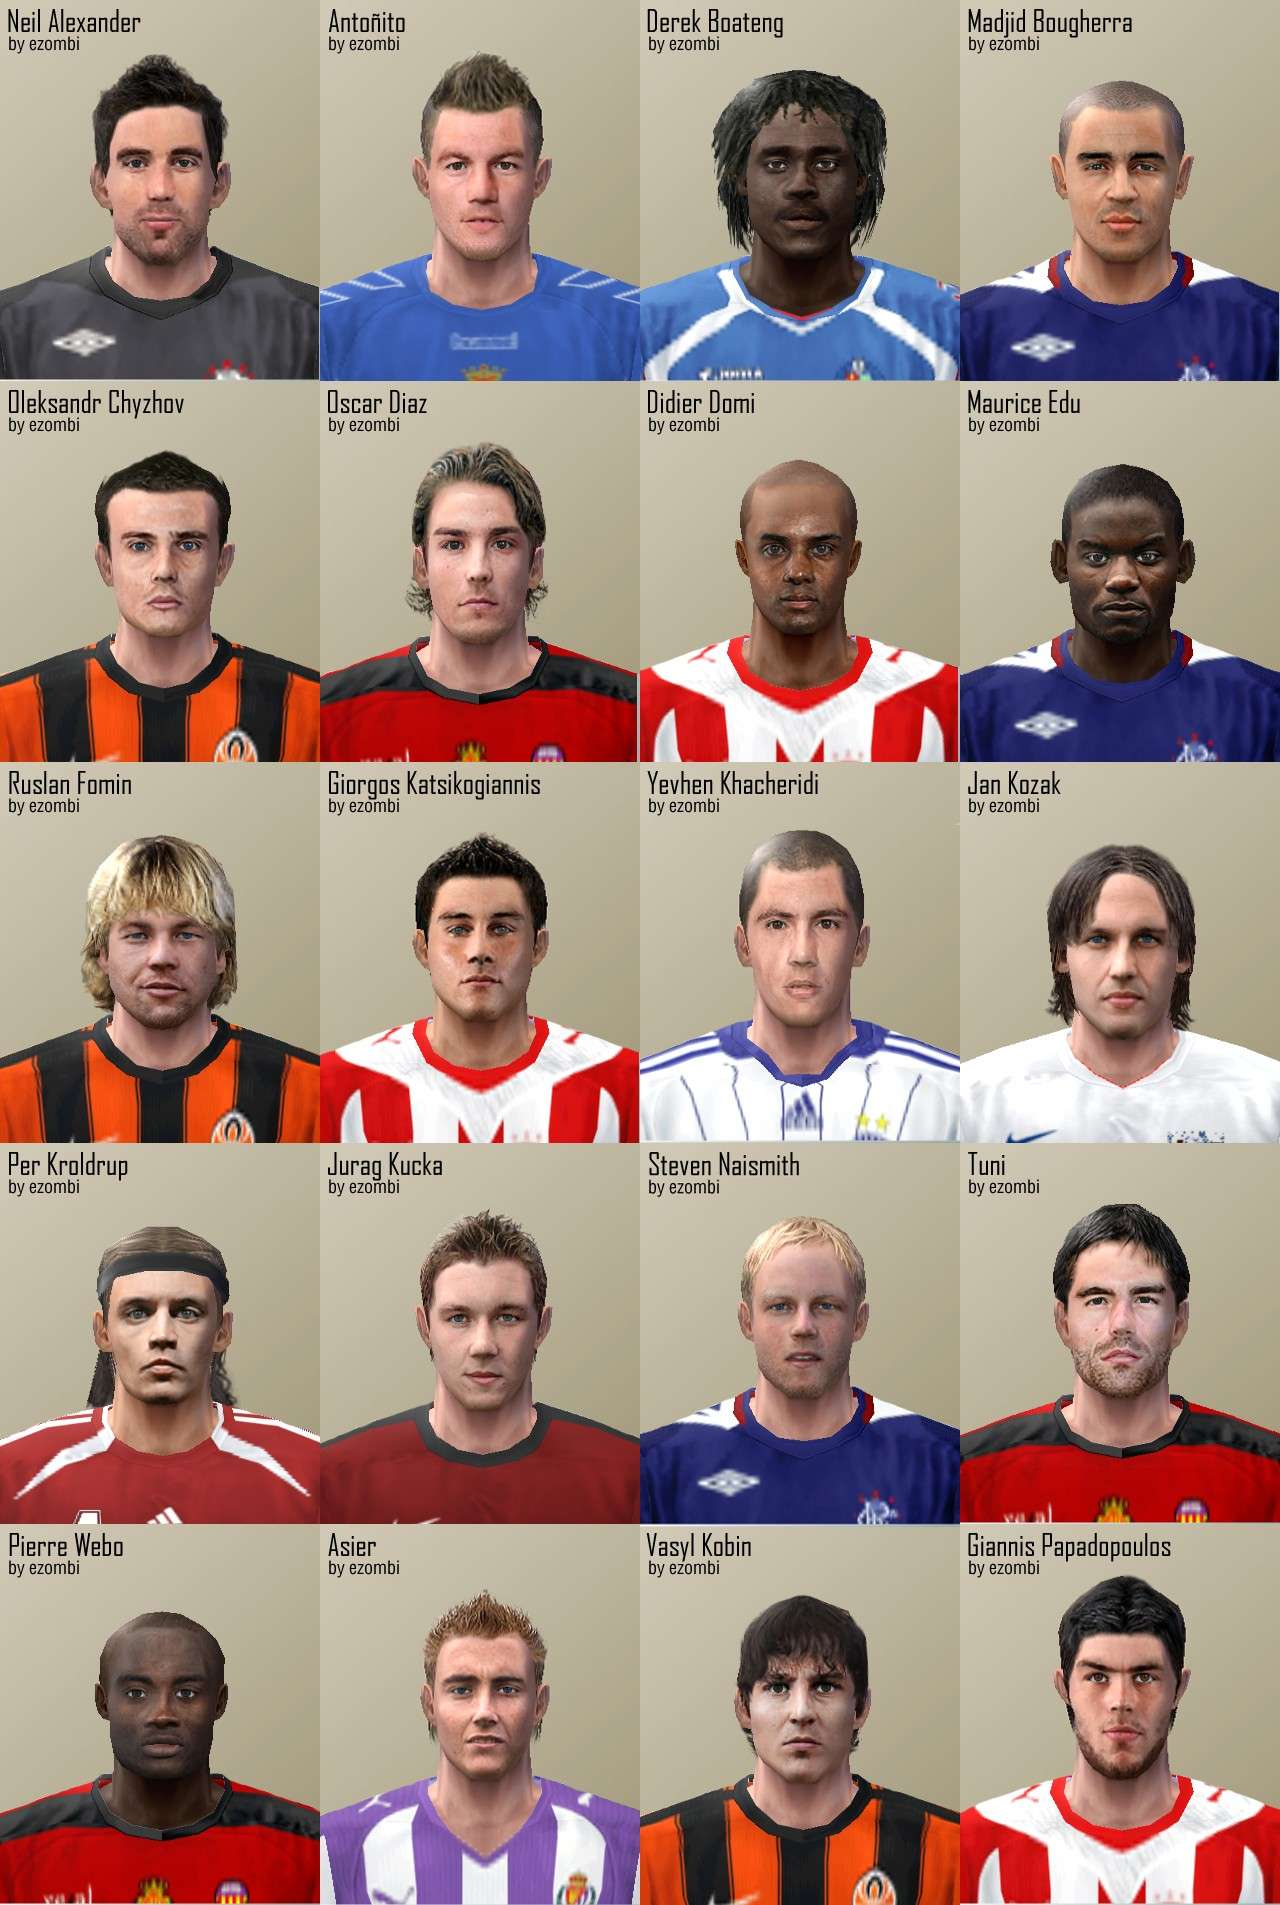 PES 6 January Faces Pack by ezombi - Pro Evolution Soccer 6